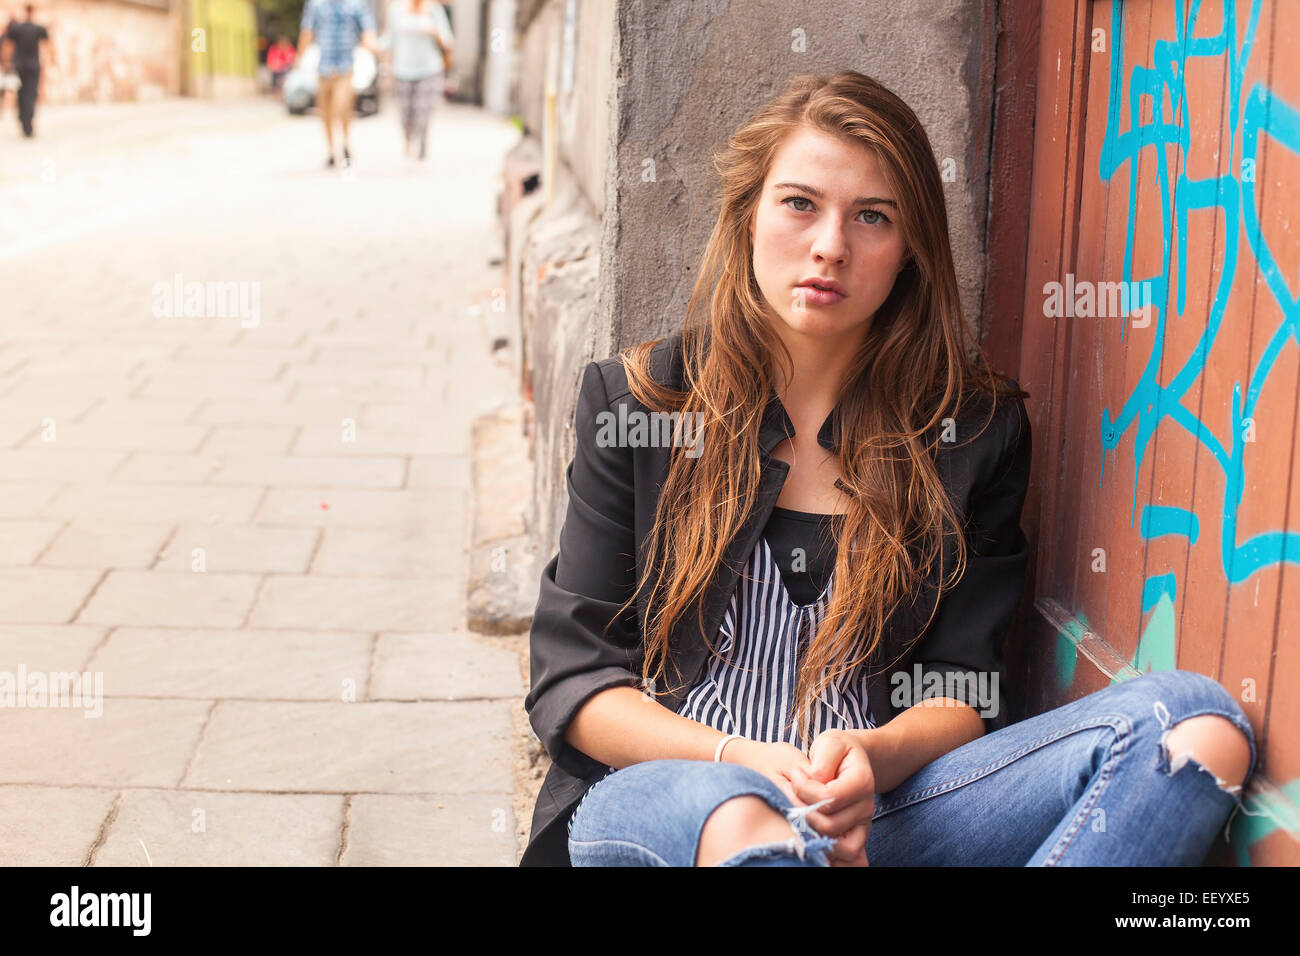 Young hipster girl sitting on the street. Stock Photo